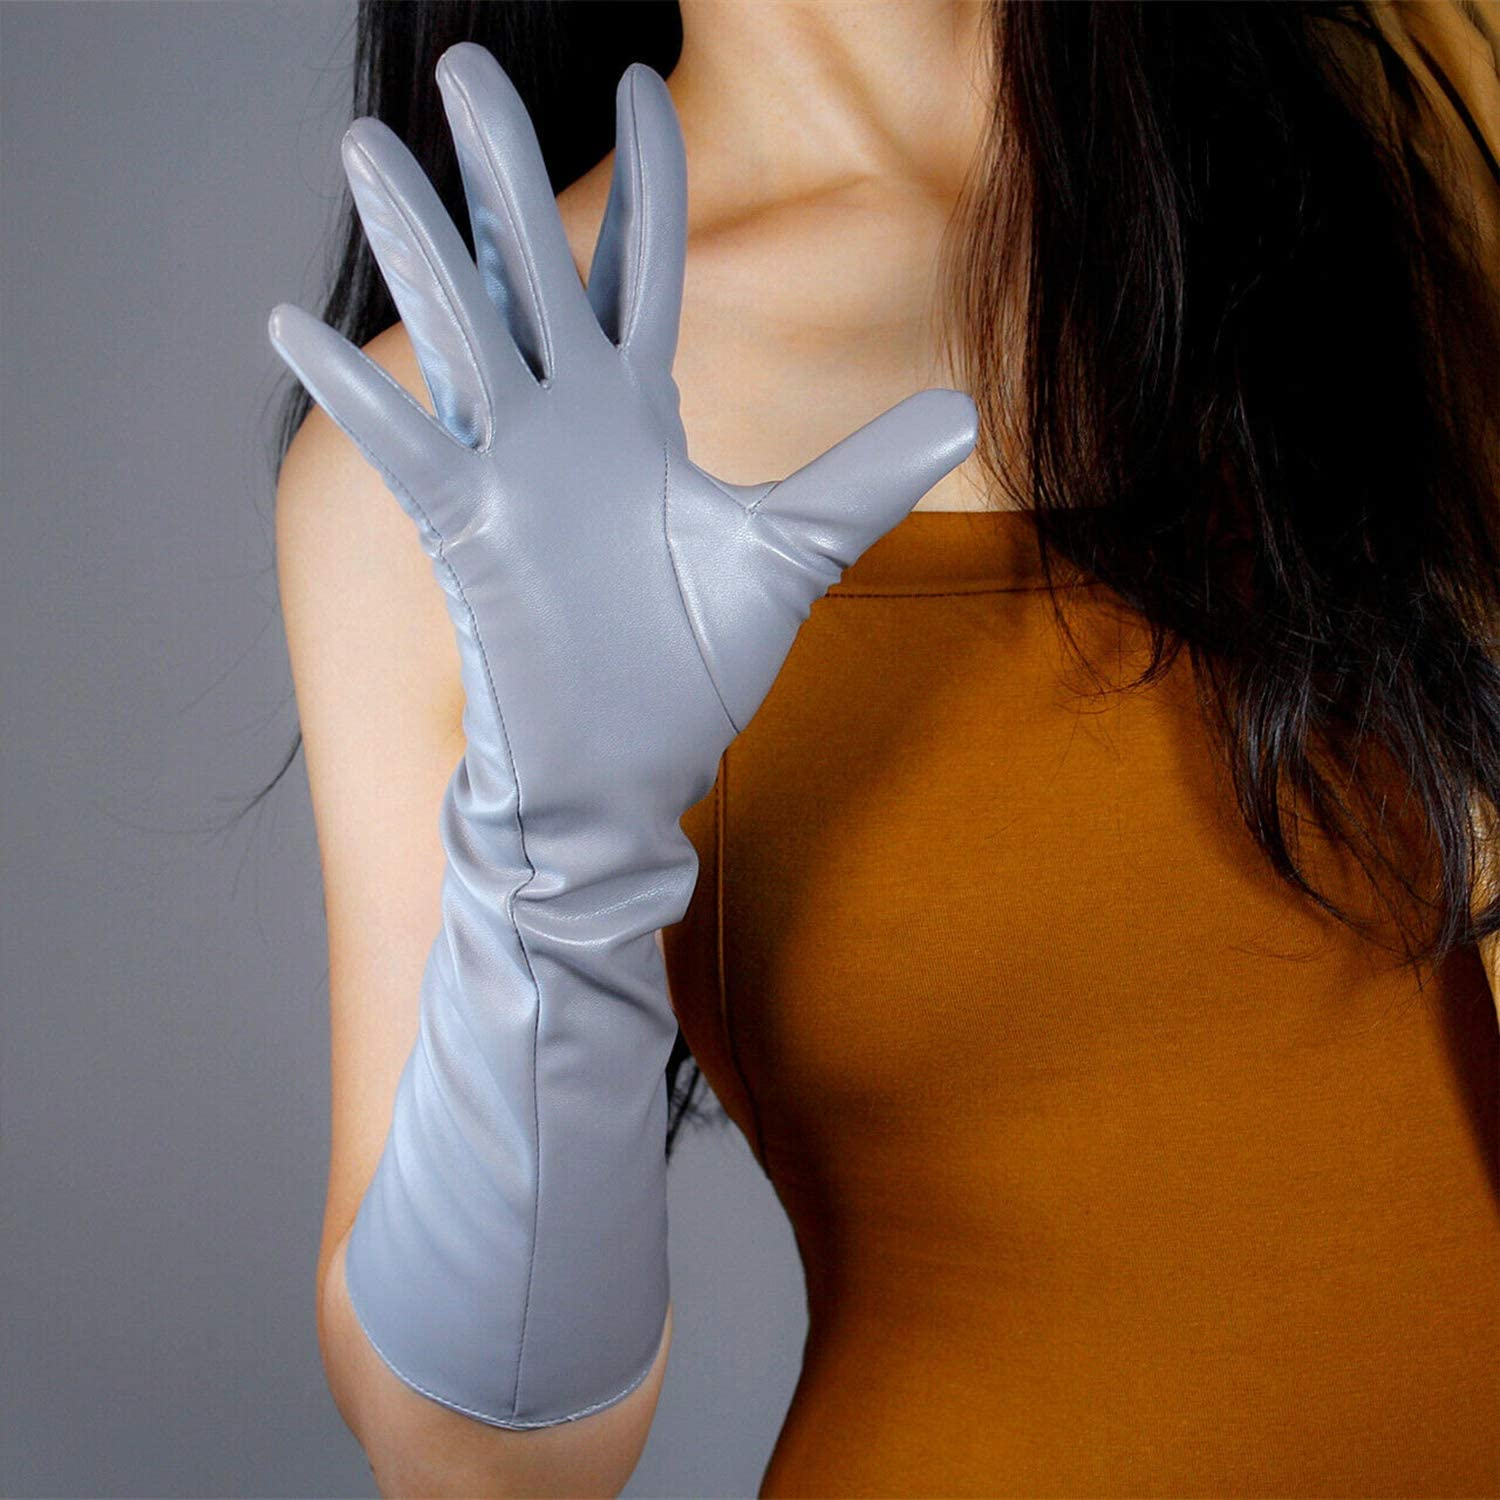 DooWay Women Long Faux Leather Gloves 16-inch Elbow Length Evening Cosplay Dress Driving Finger Gloves